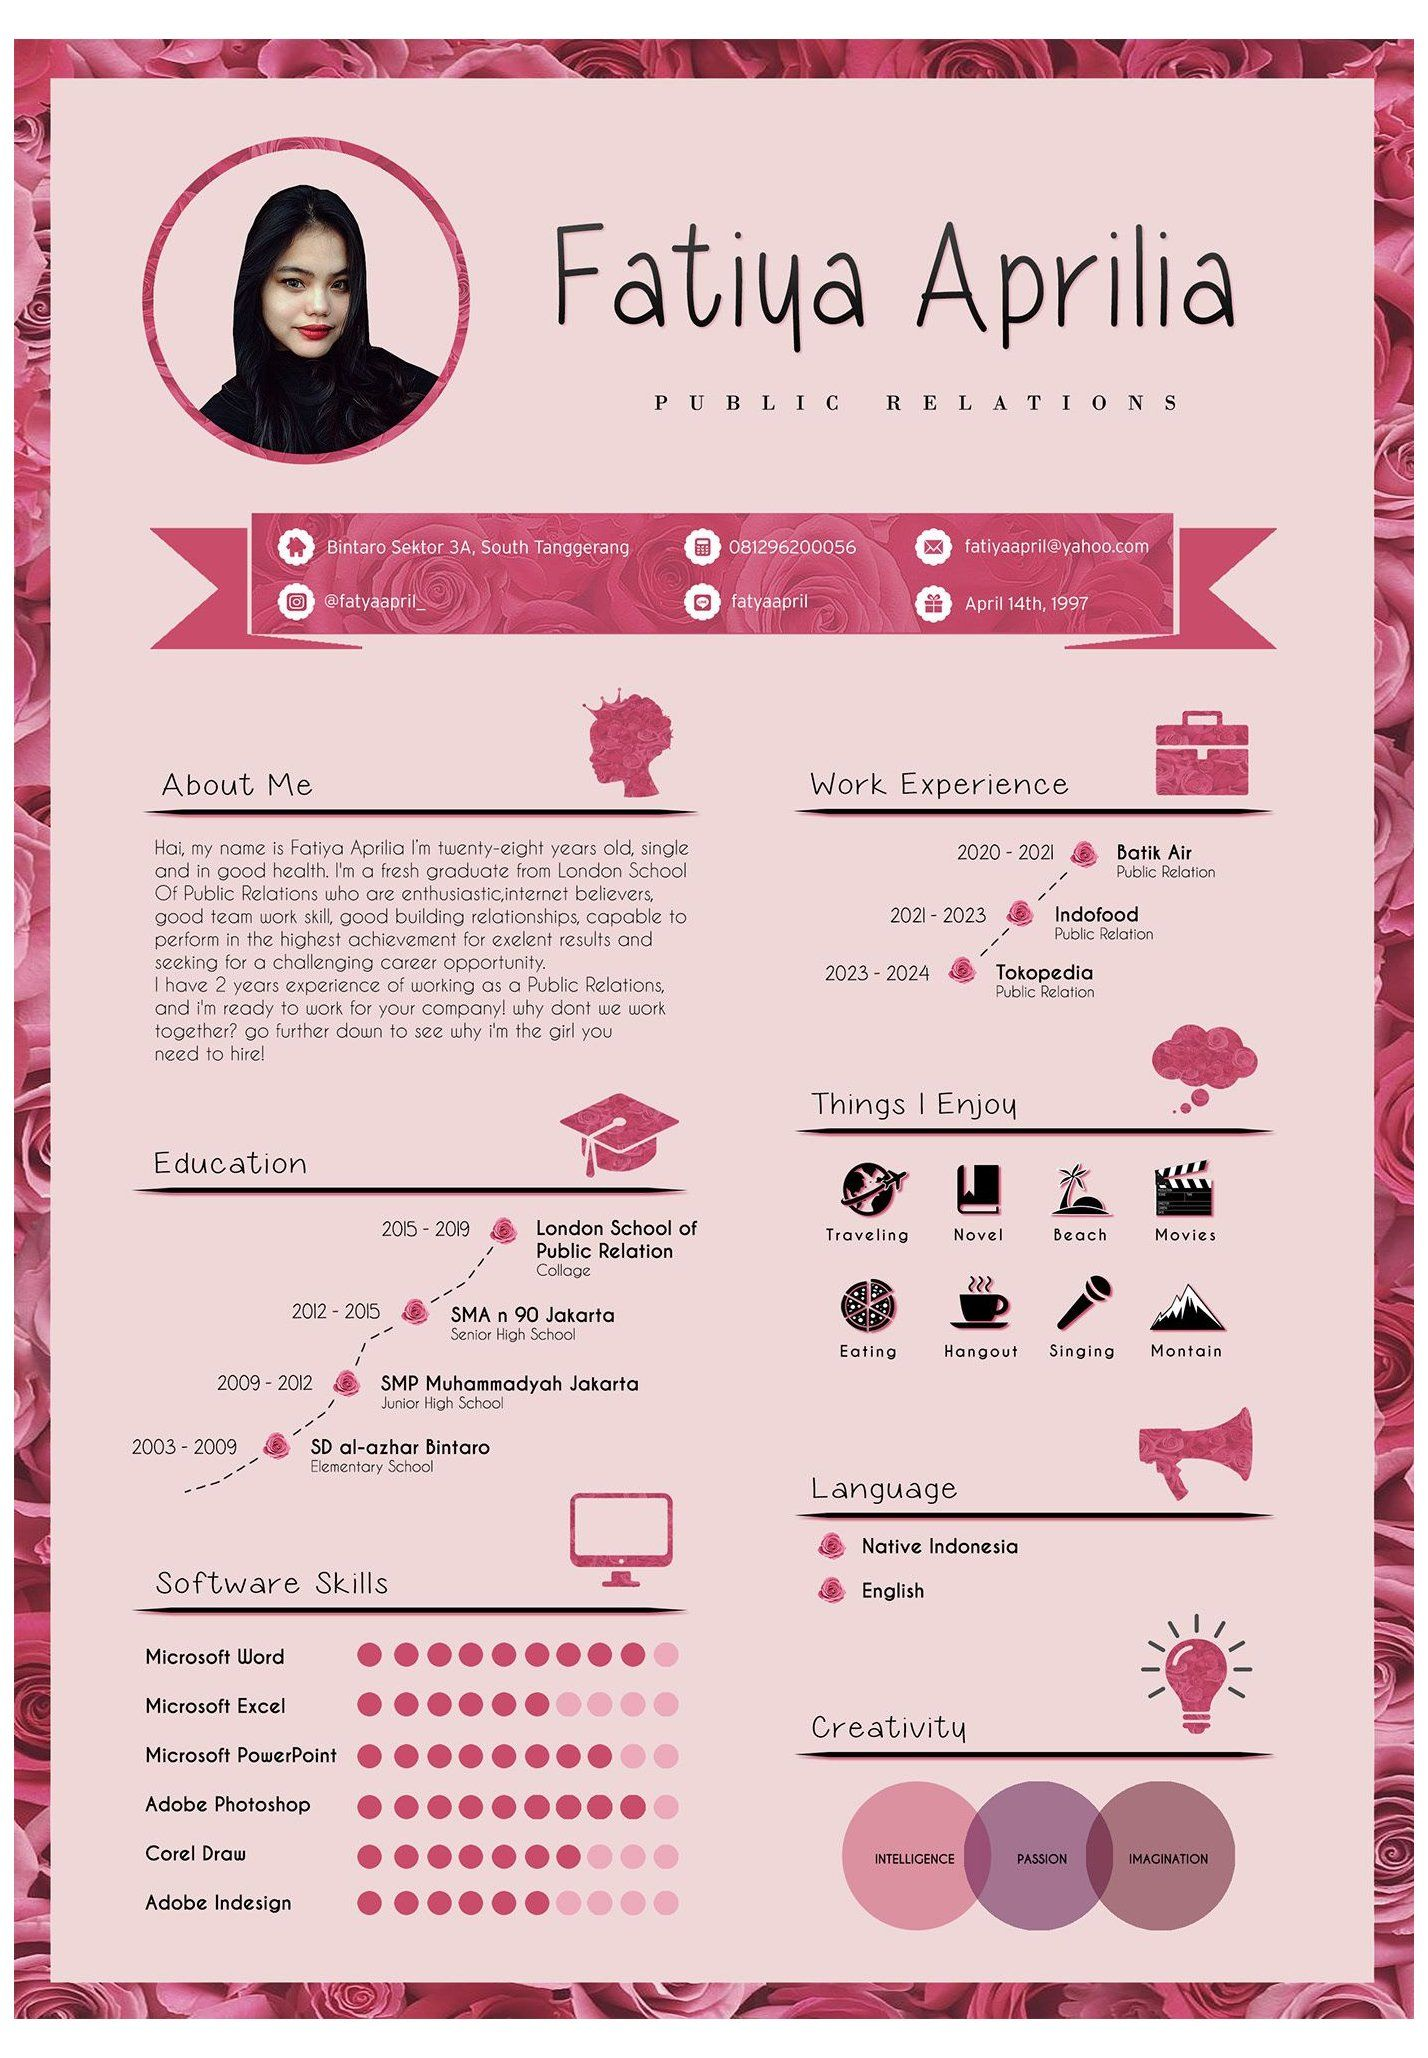 Cv Resume Design Cv Design Professional Cv Template Cvdesignprofessionalcvtemplate In 2021 Graphic Design Resume Resume Design Creative Cv Design Creative